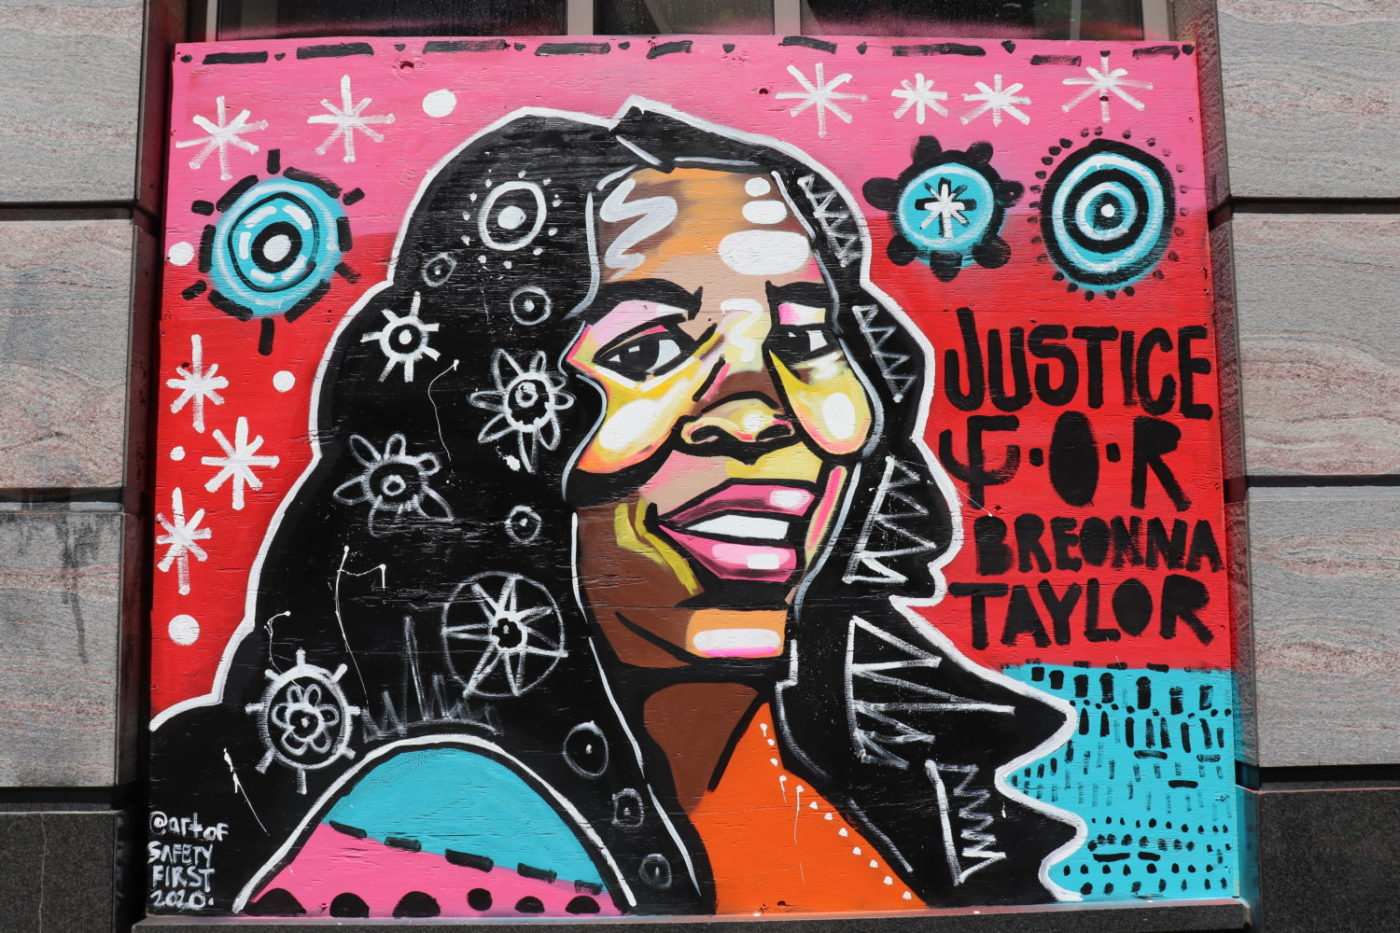 Justice-for-Breonna-Taylor-mural-on-boarded-up-window-Oakland-0720-by-JR-1400x933, Supervisor Shamann Walton's CAREN Act seeks to legally address the weaponization of calling 911, Local News & Views